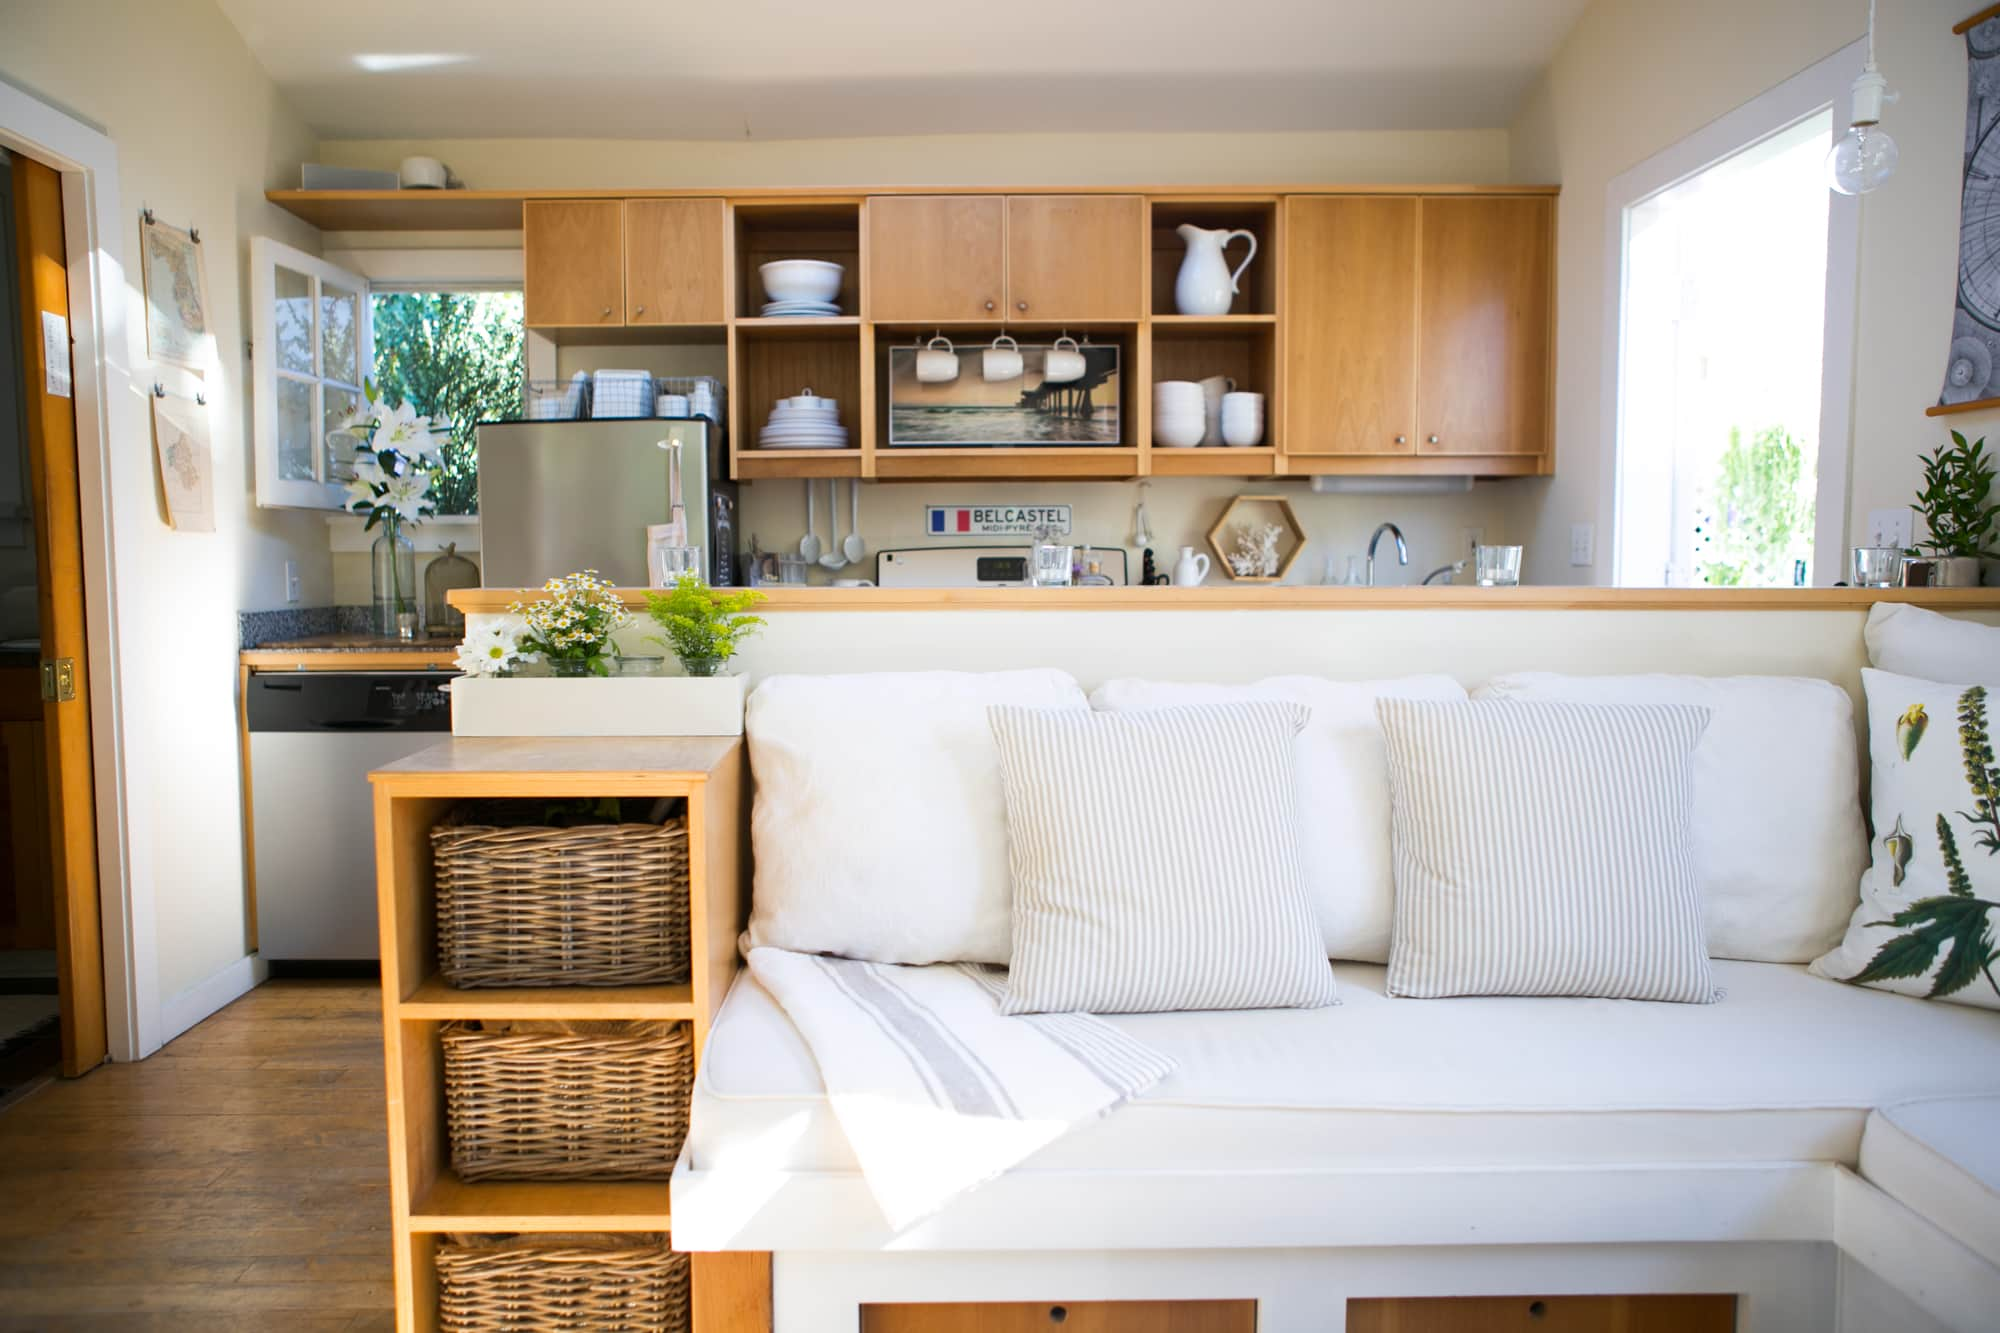 Small-Space Storage Tips from People Who Live in Tiny Homes